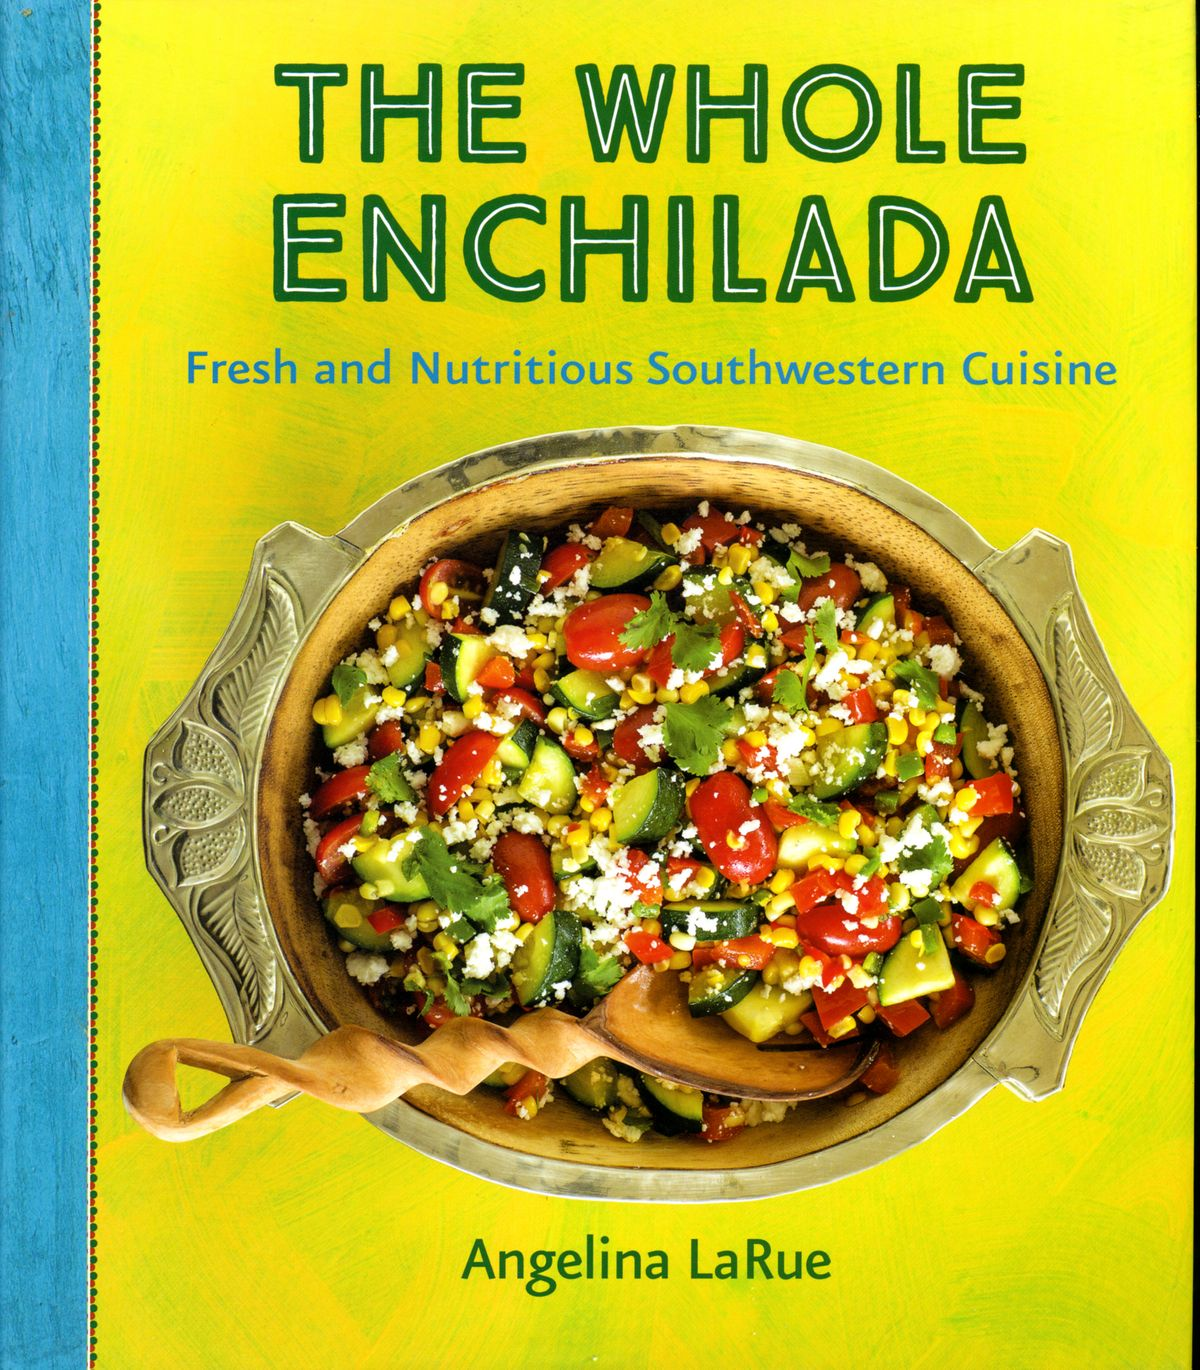 wholeEnchilada_019.jpg